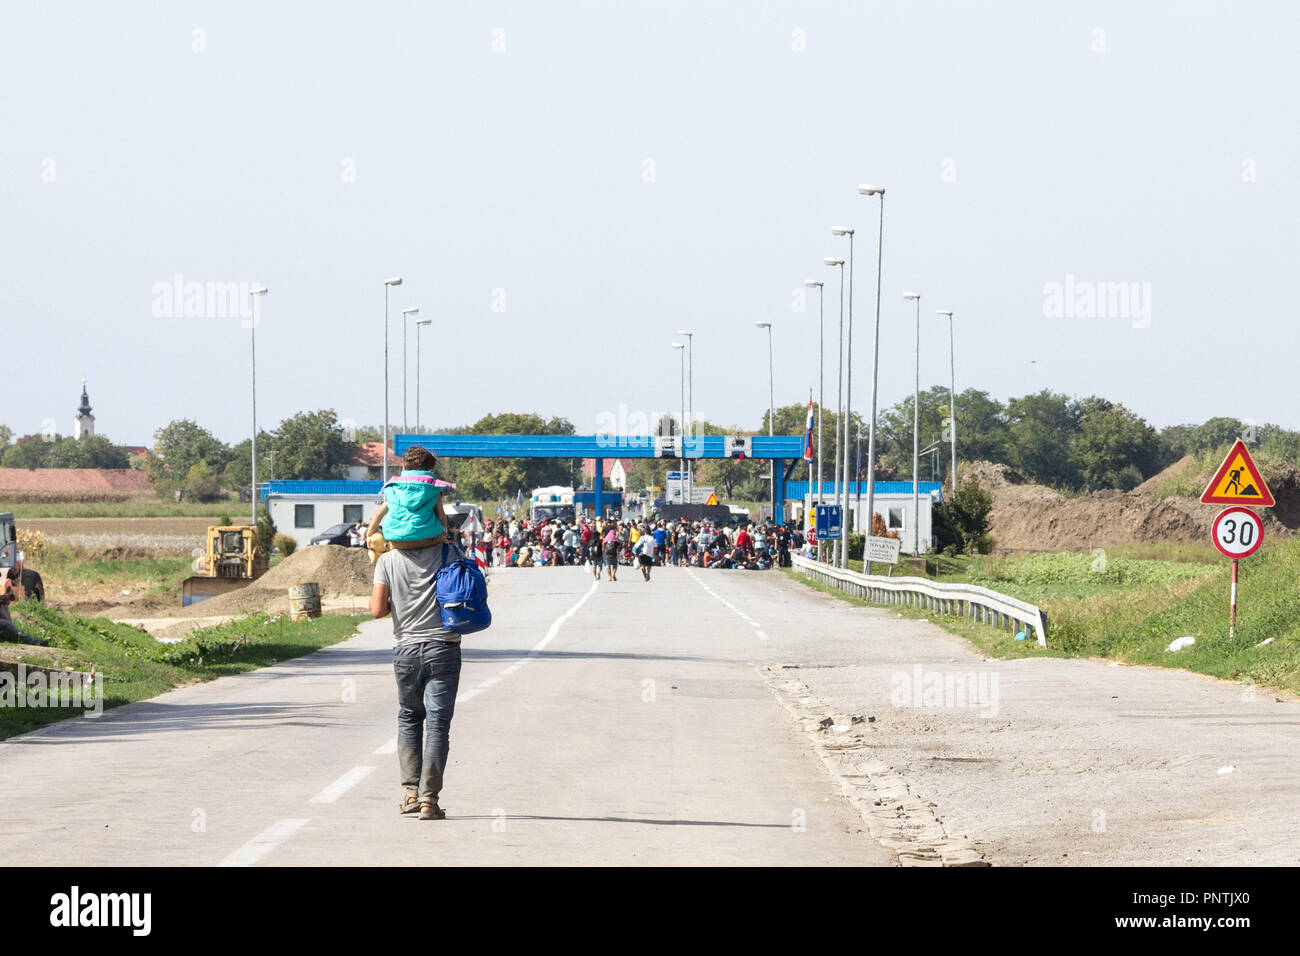 TOVARNIK, CROATIA - SEPTEMBER 19, 2015: Refugees gathering in front of the Serbia-Croatia border crossing of Sid Tovarnik on the Balkans Route, during - Stock Image